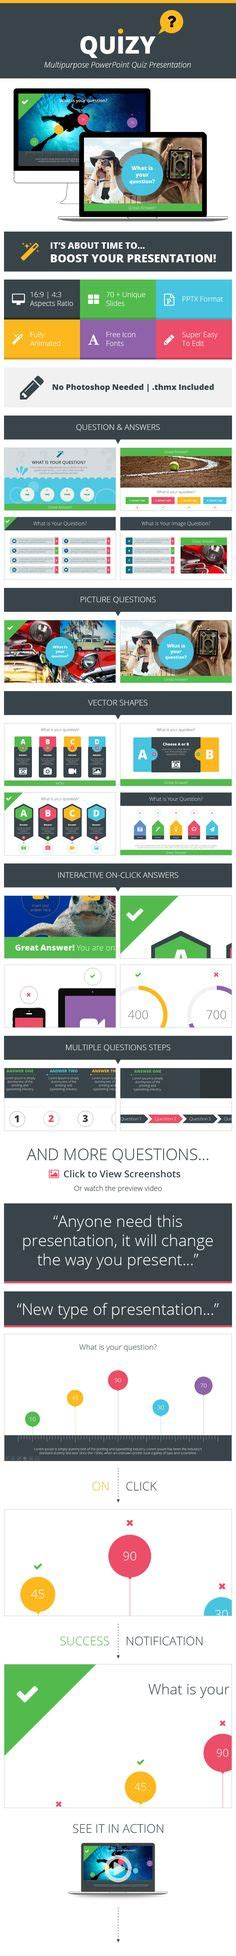 game design quiz 1000 images about game design quiz on pinterest